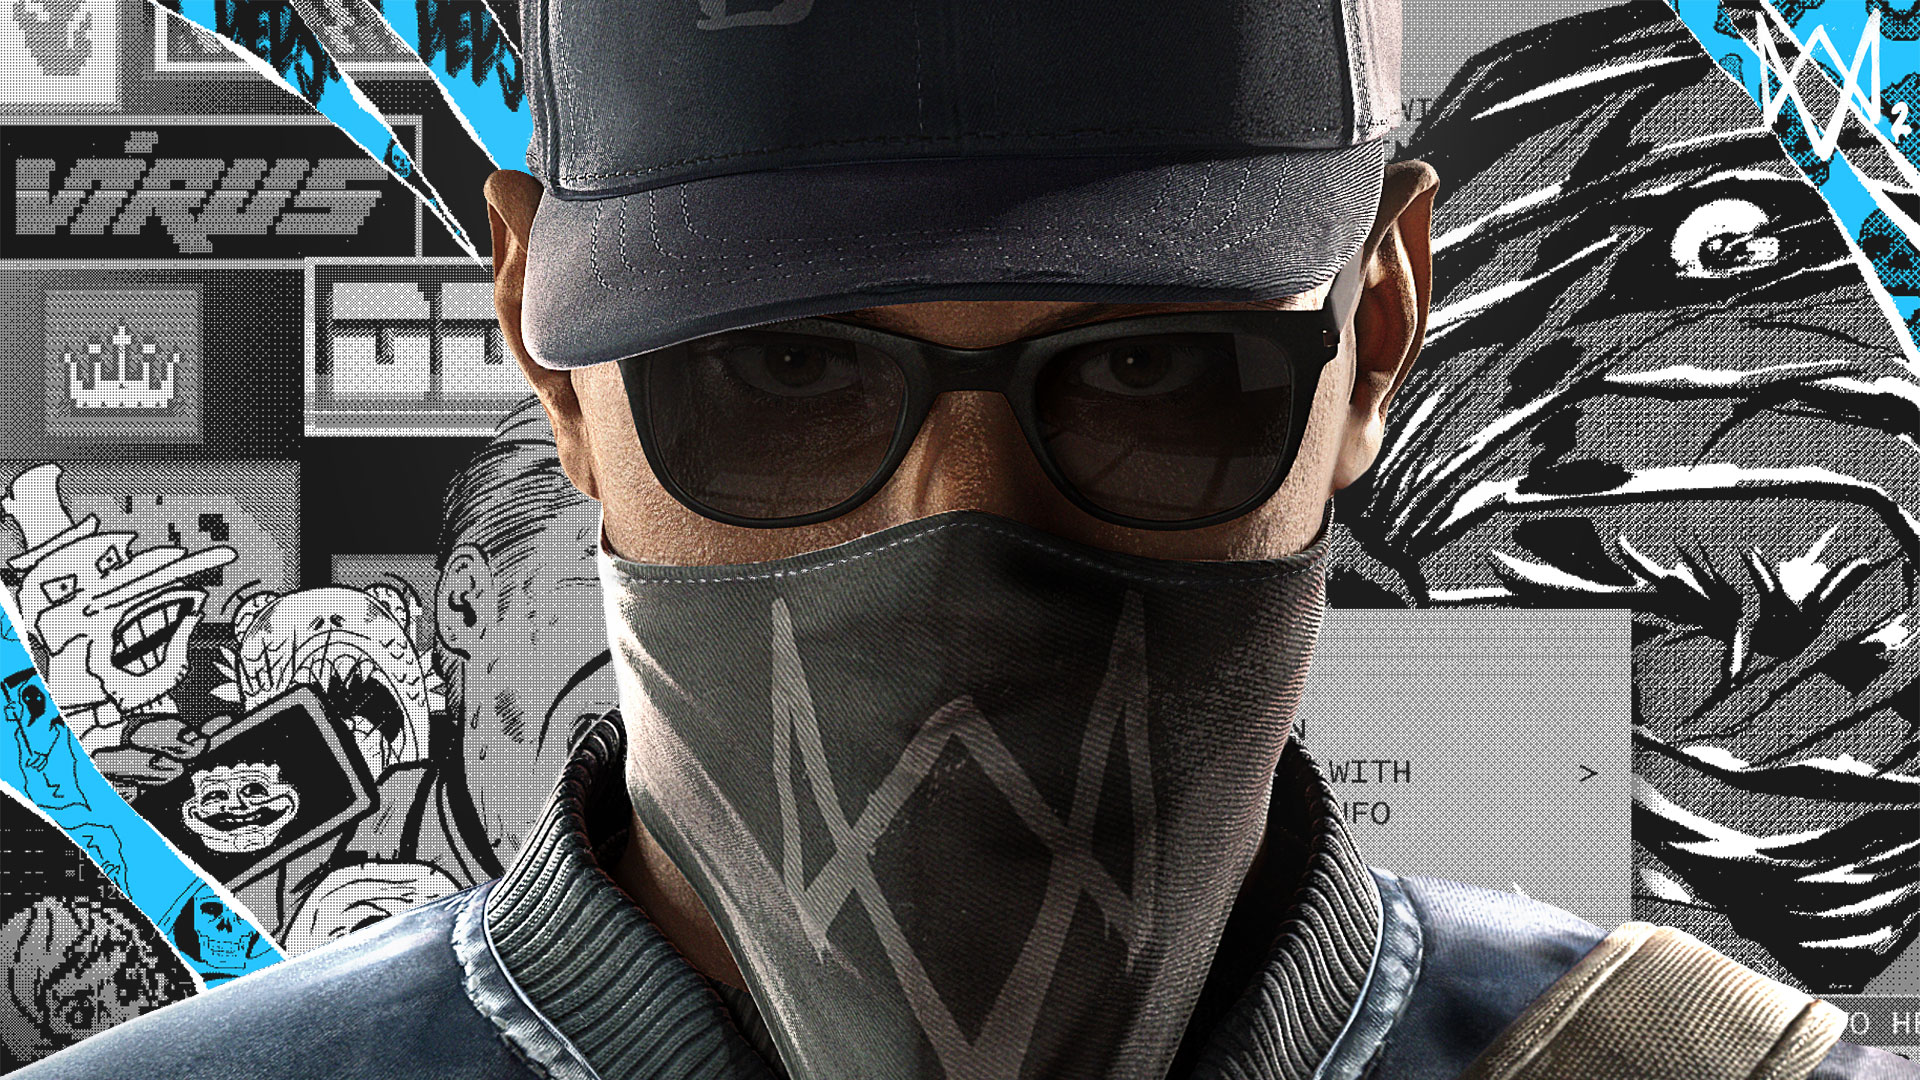 Watch dogs 2 wallpapers pictures images watch dogs 2 full hd wallpaper 1920x1080 voltagebd Images